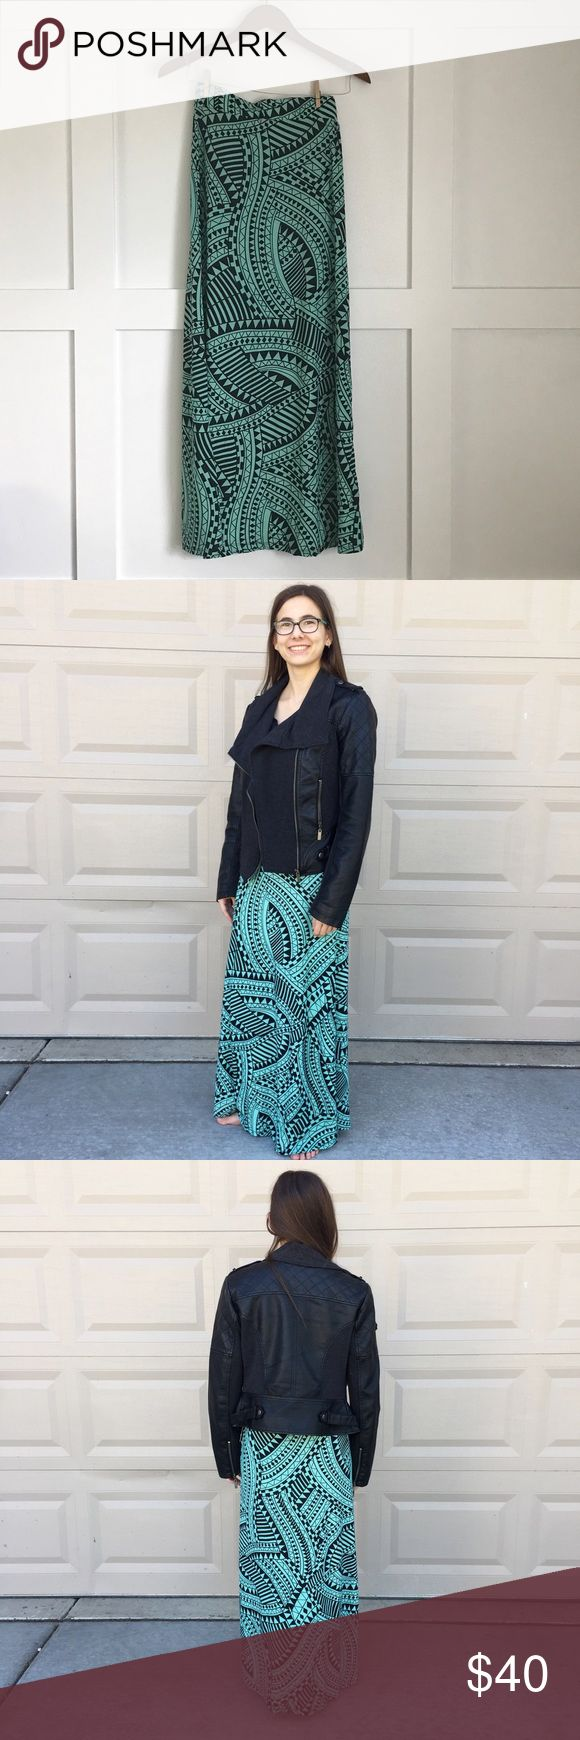 """Aztec Maxi Skirt Super soft. Elastic waist.Light teal and black abstract Aztec print.   Made of 92% polyester, 8% spandex Size S Measurements: Waist to hem approx. 38"""".                               Check my closet for more color options! Skirts Maxi"""